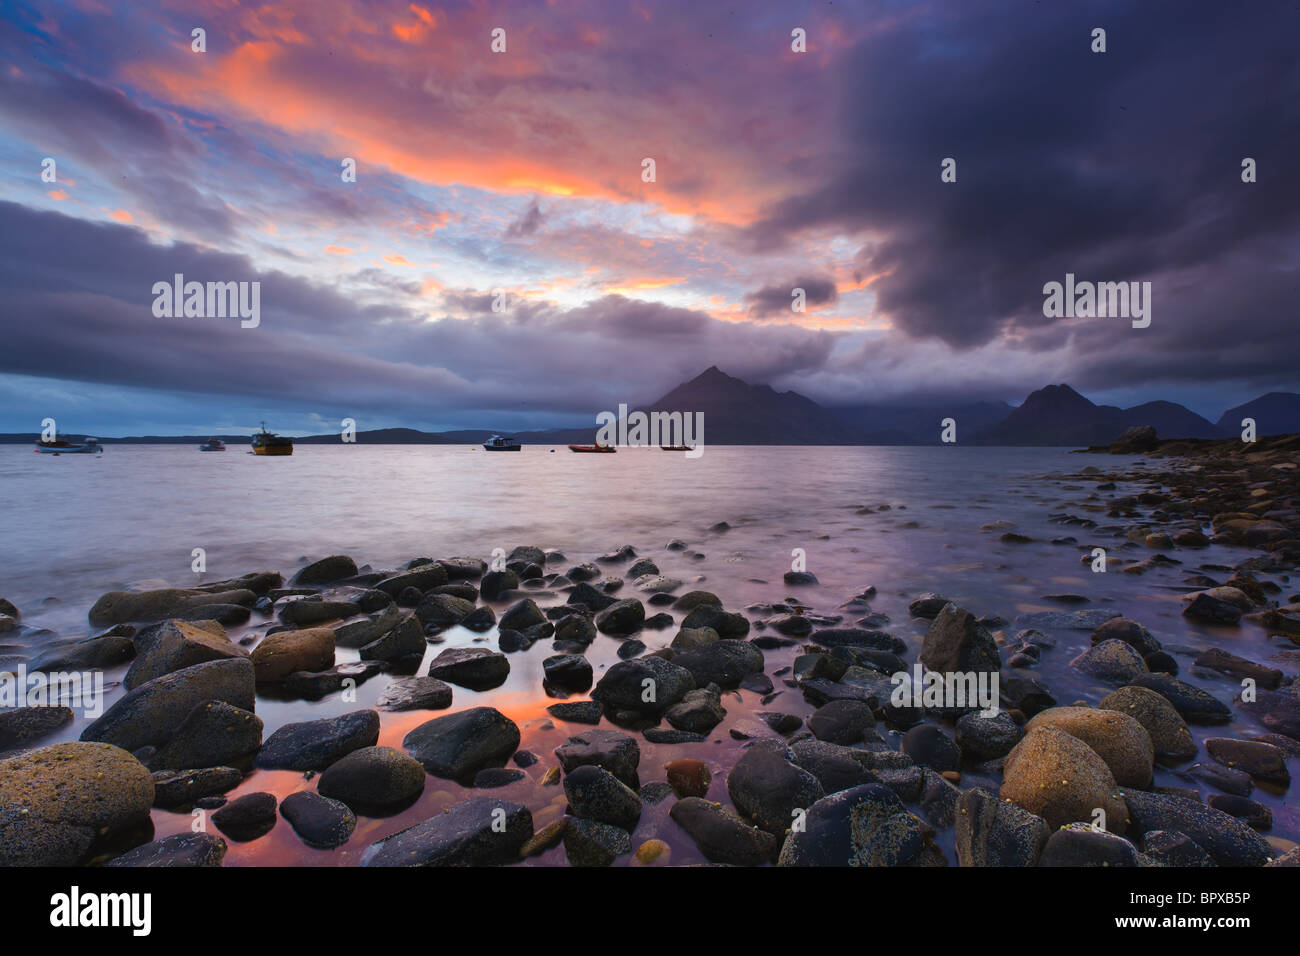 Sunset at Elgol Beach, Isle of Skye, Scotland - Stock Image